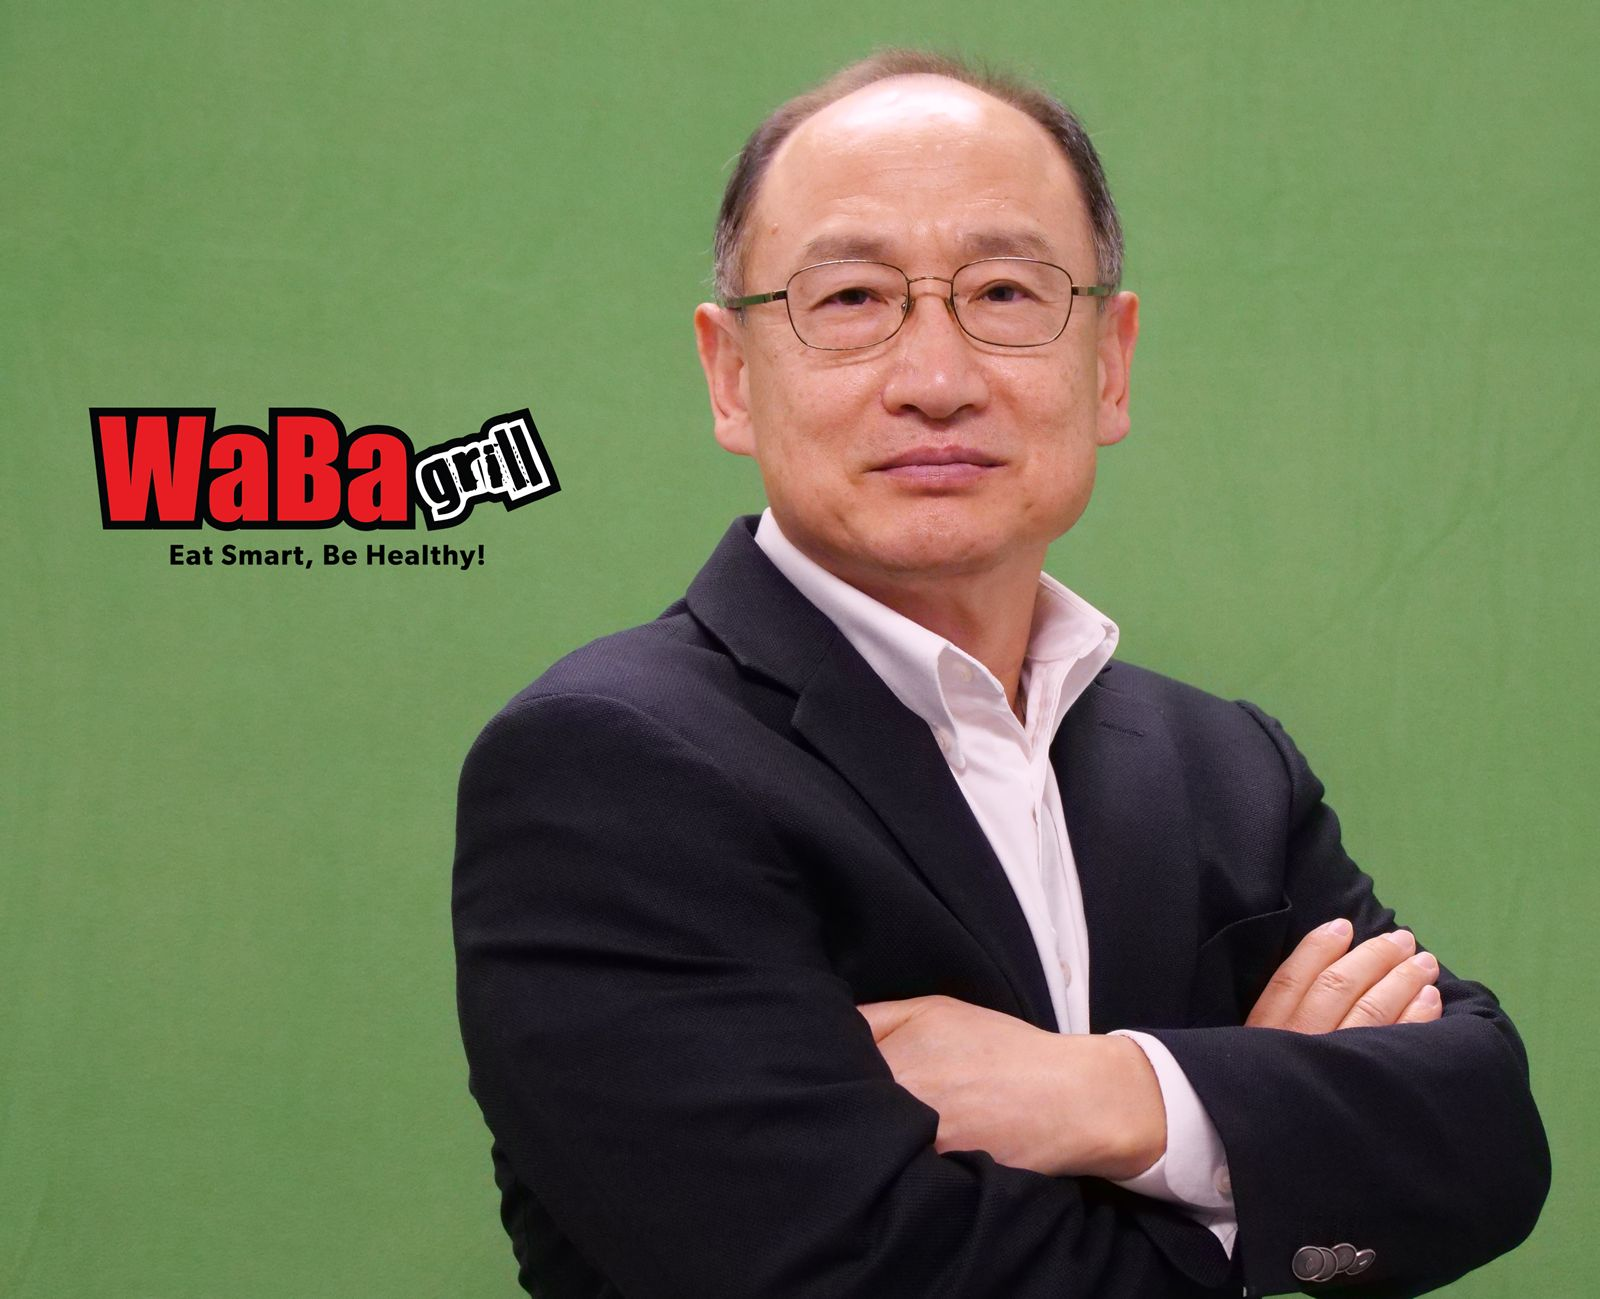 Andrew Kim, President & CEO of WaBa Grill